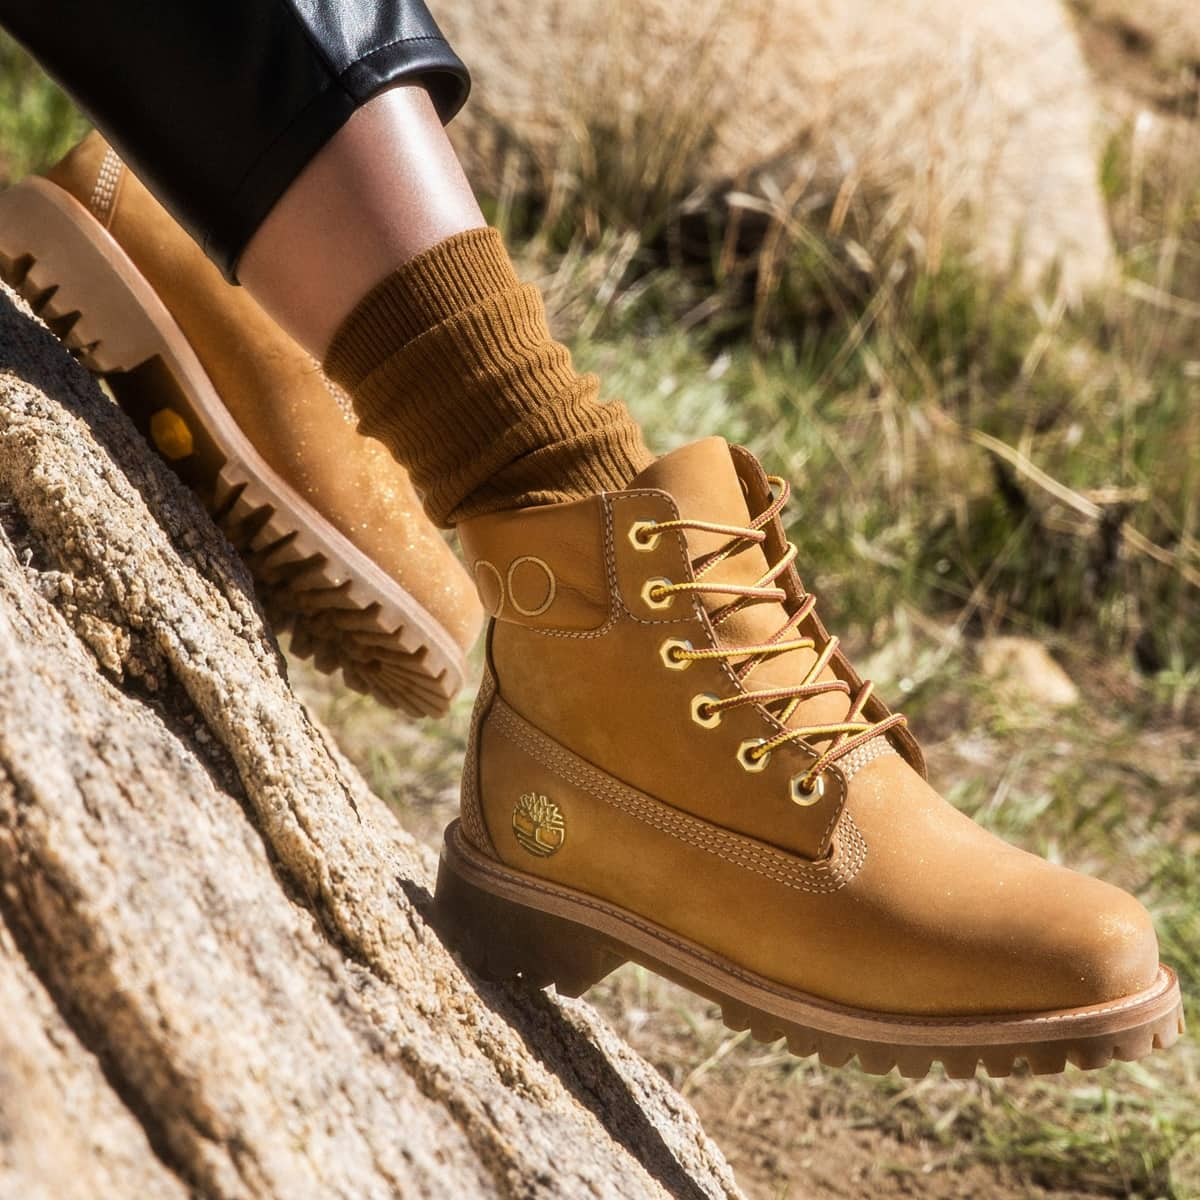 This leather-lined sustainably-made boot is grounded with durable Vibram outsoles and sprayed with gold glitter